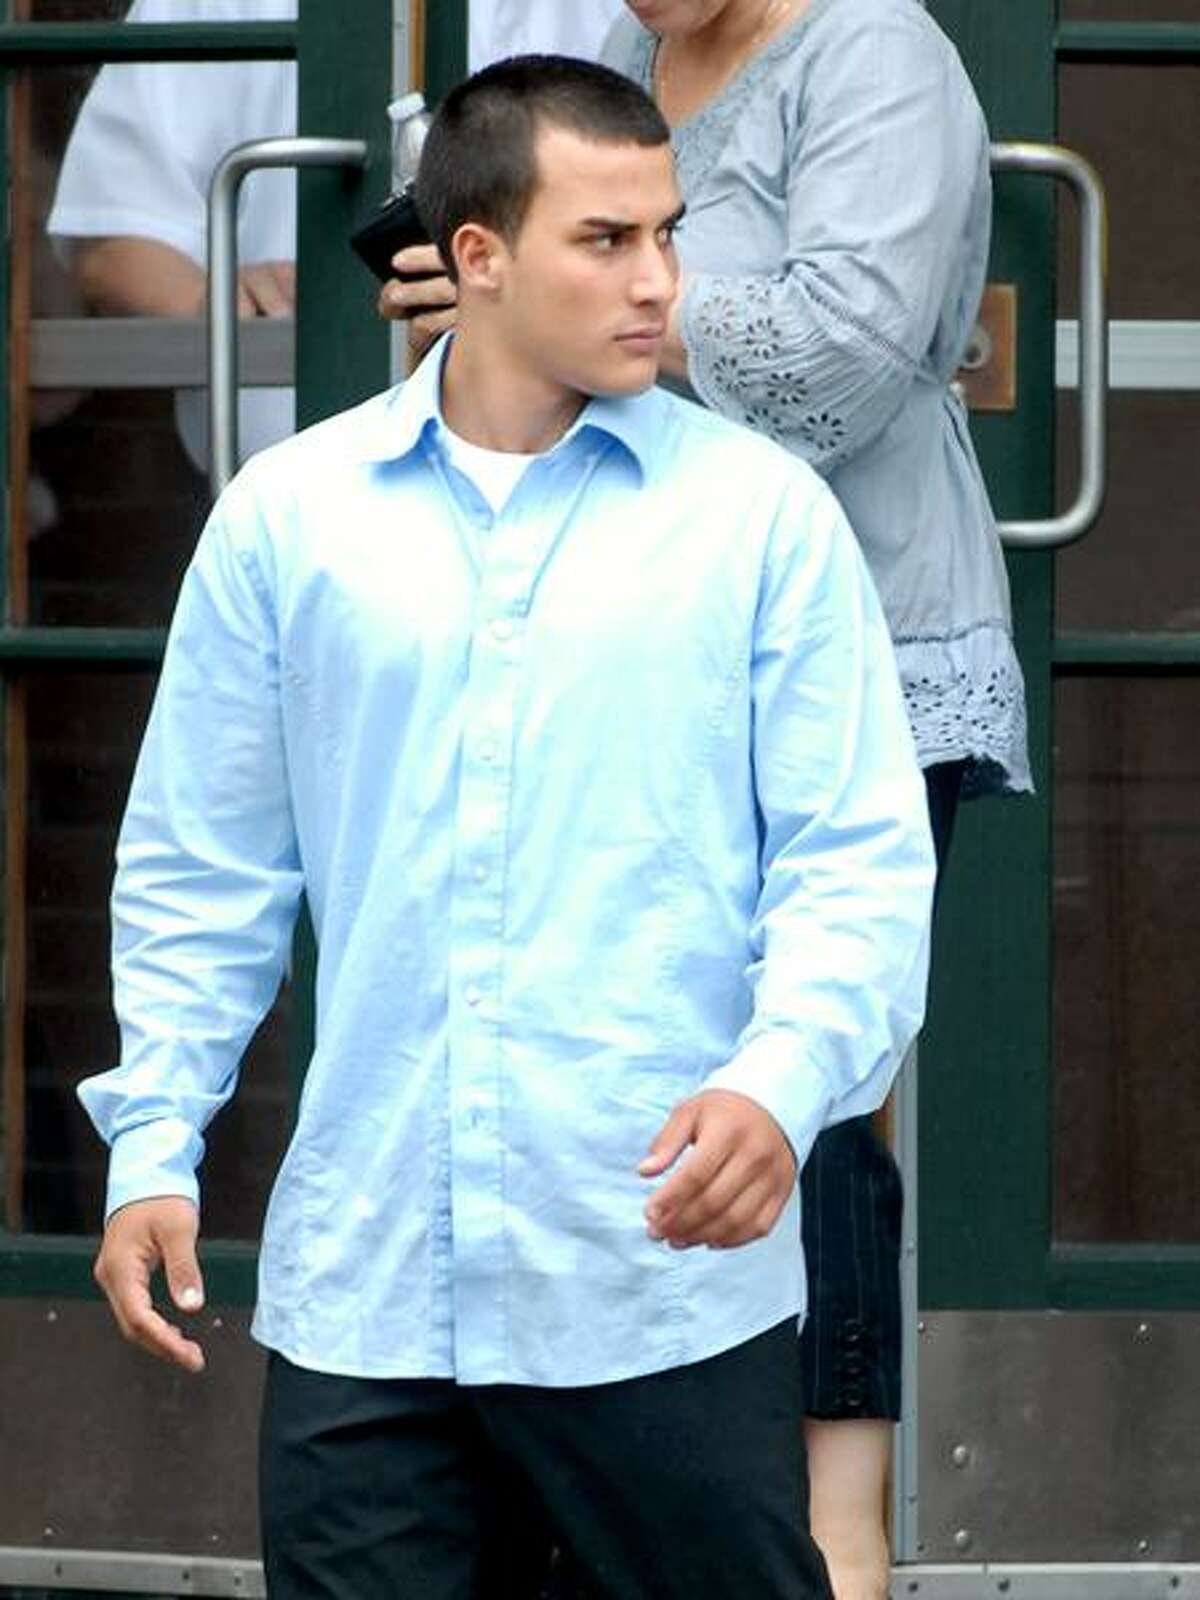 Edi Rapo leaves court after posting bail on manslaughter charges July 14, 2010. Arnold Gold/Register file photo